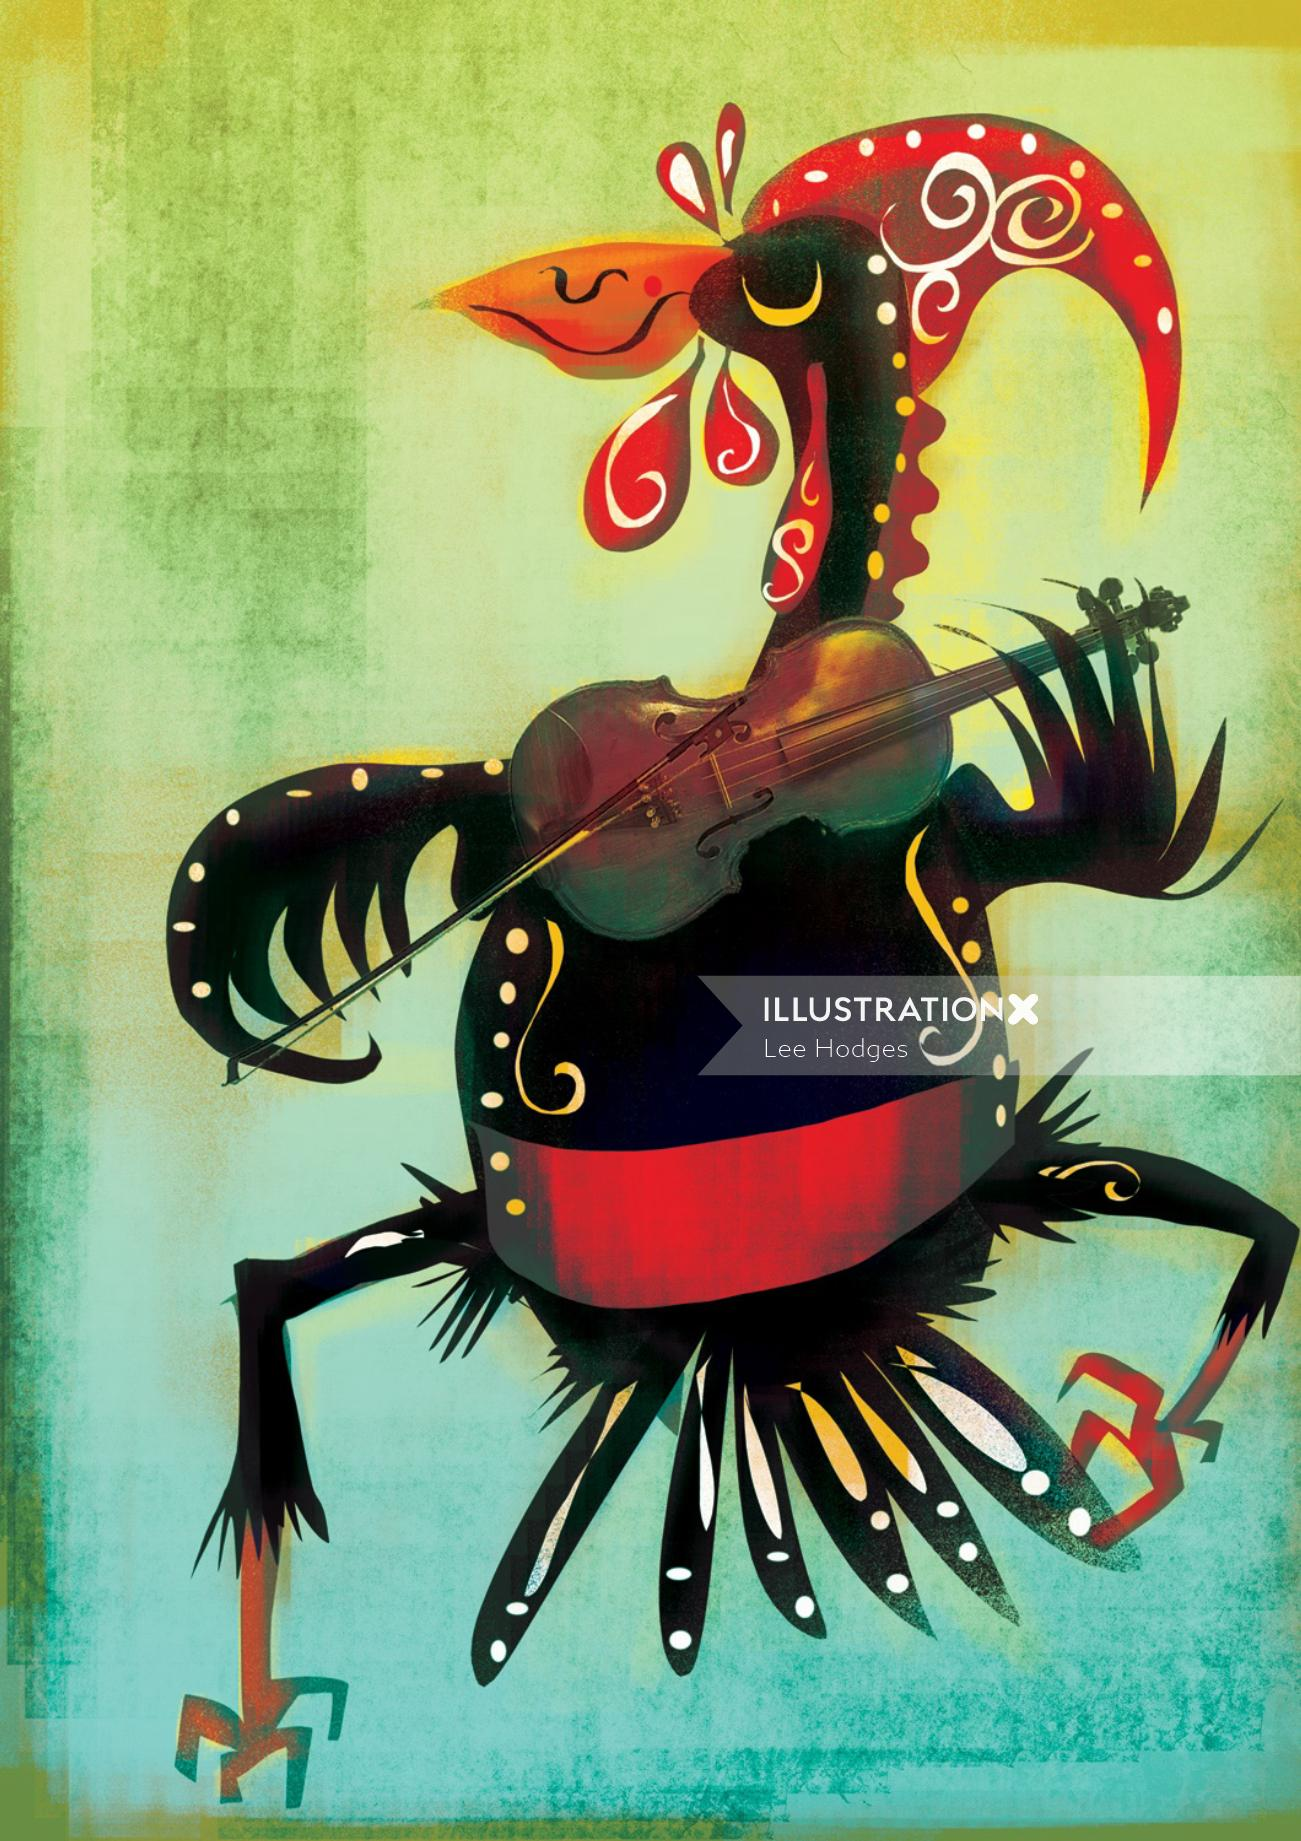 Latin musical bird illustration by Lee Hodges